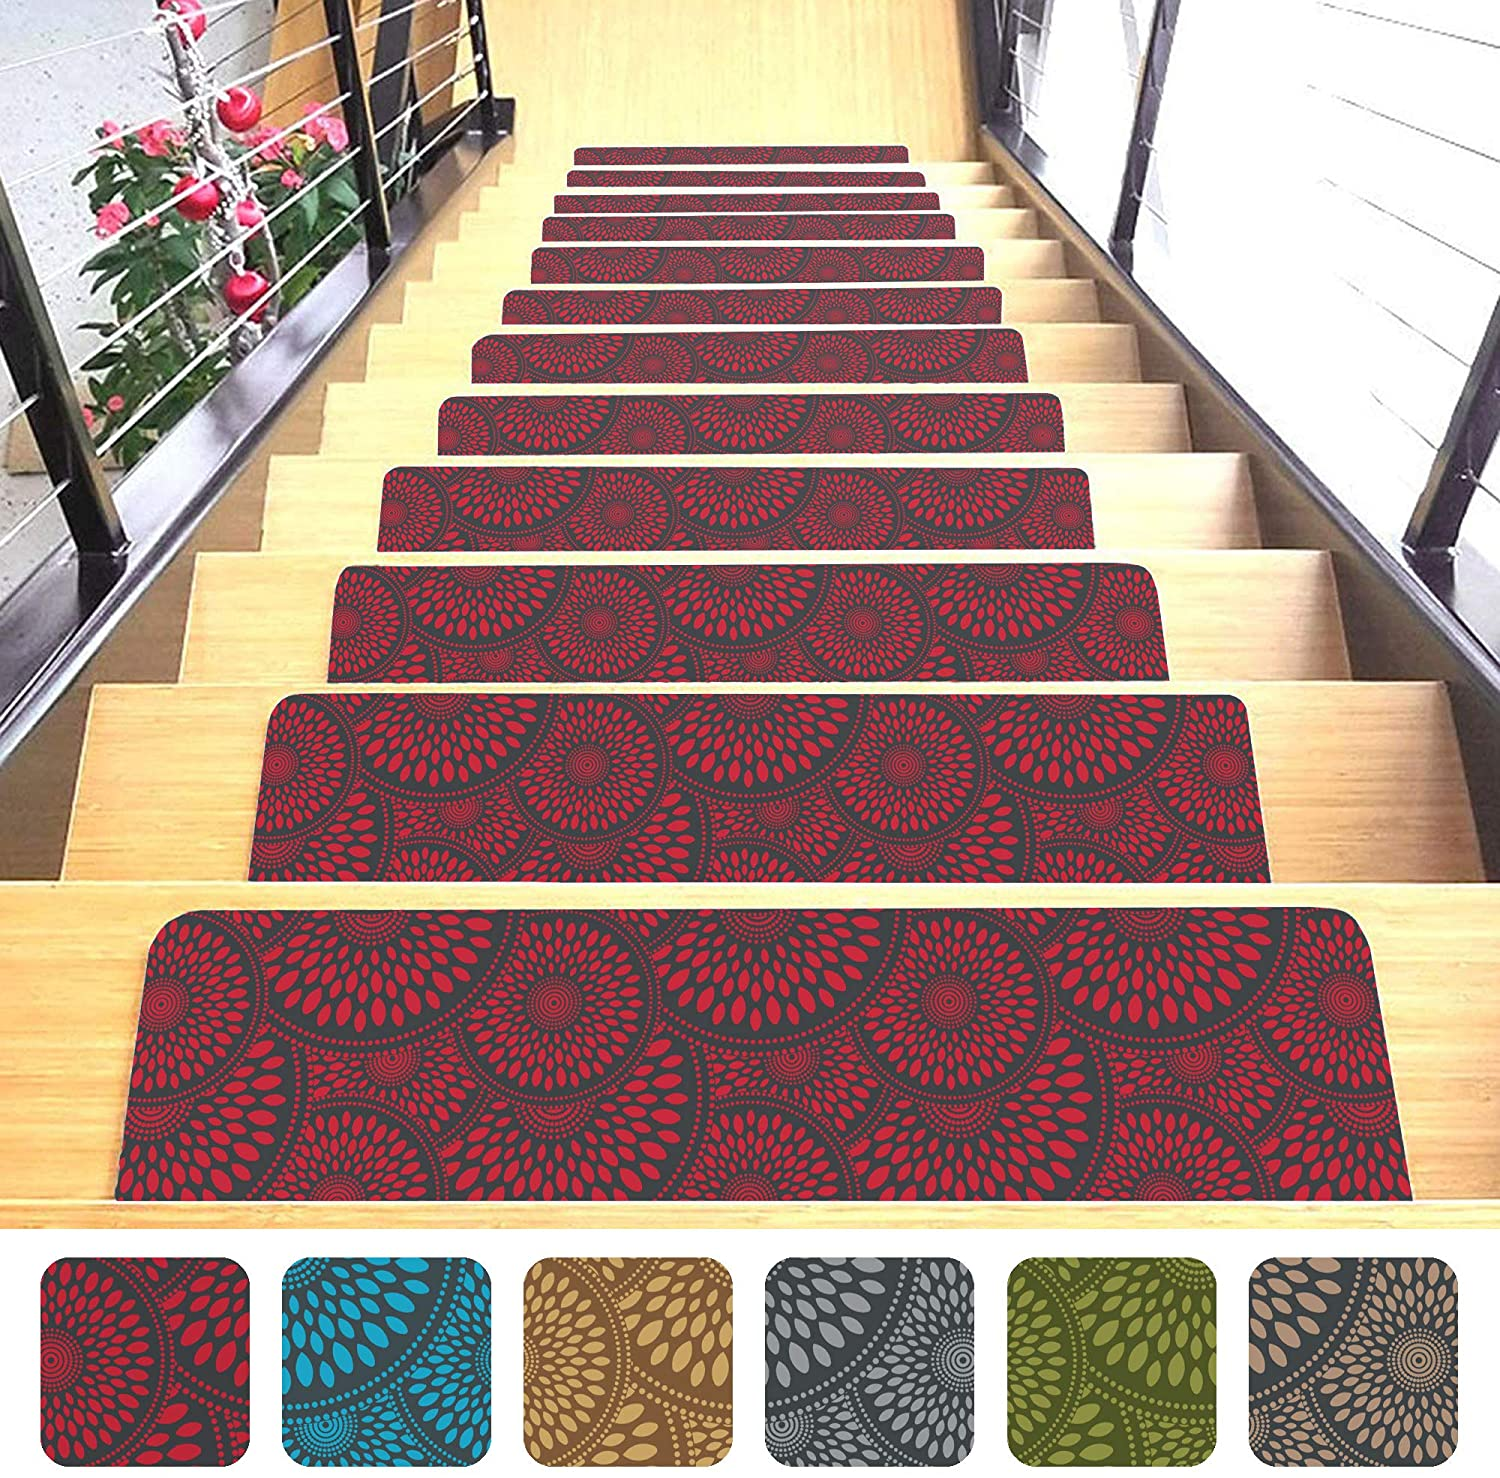 "Shape28 Stair Treads Ultra-Thin with Non Slip Rubber Backing 9""x26"", Red 7 Pieces"